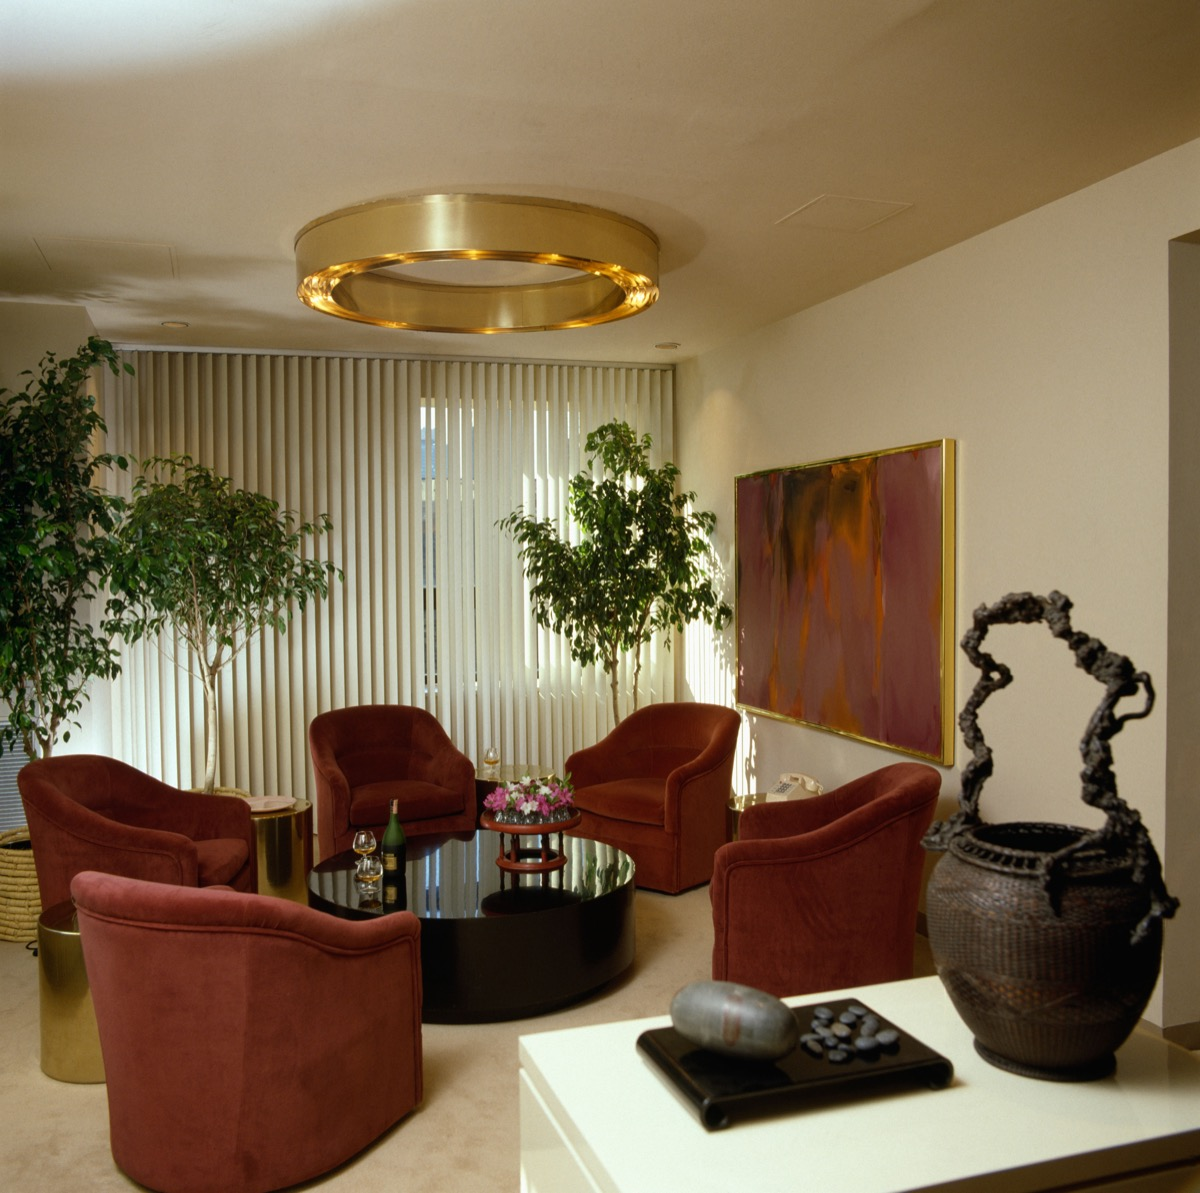 A9K1RP Circular metal light fitting in eighties livingroom with red velour sofas and vertical Venetian blinds